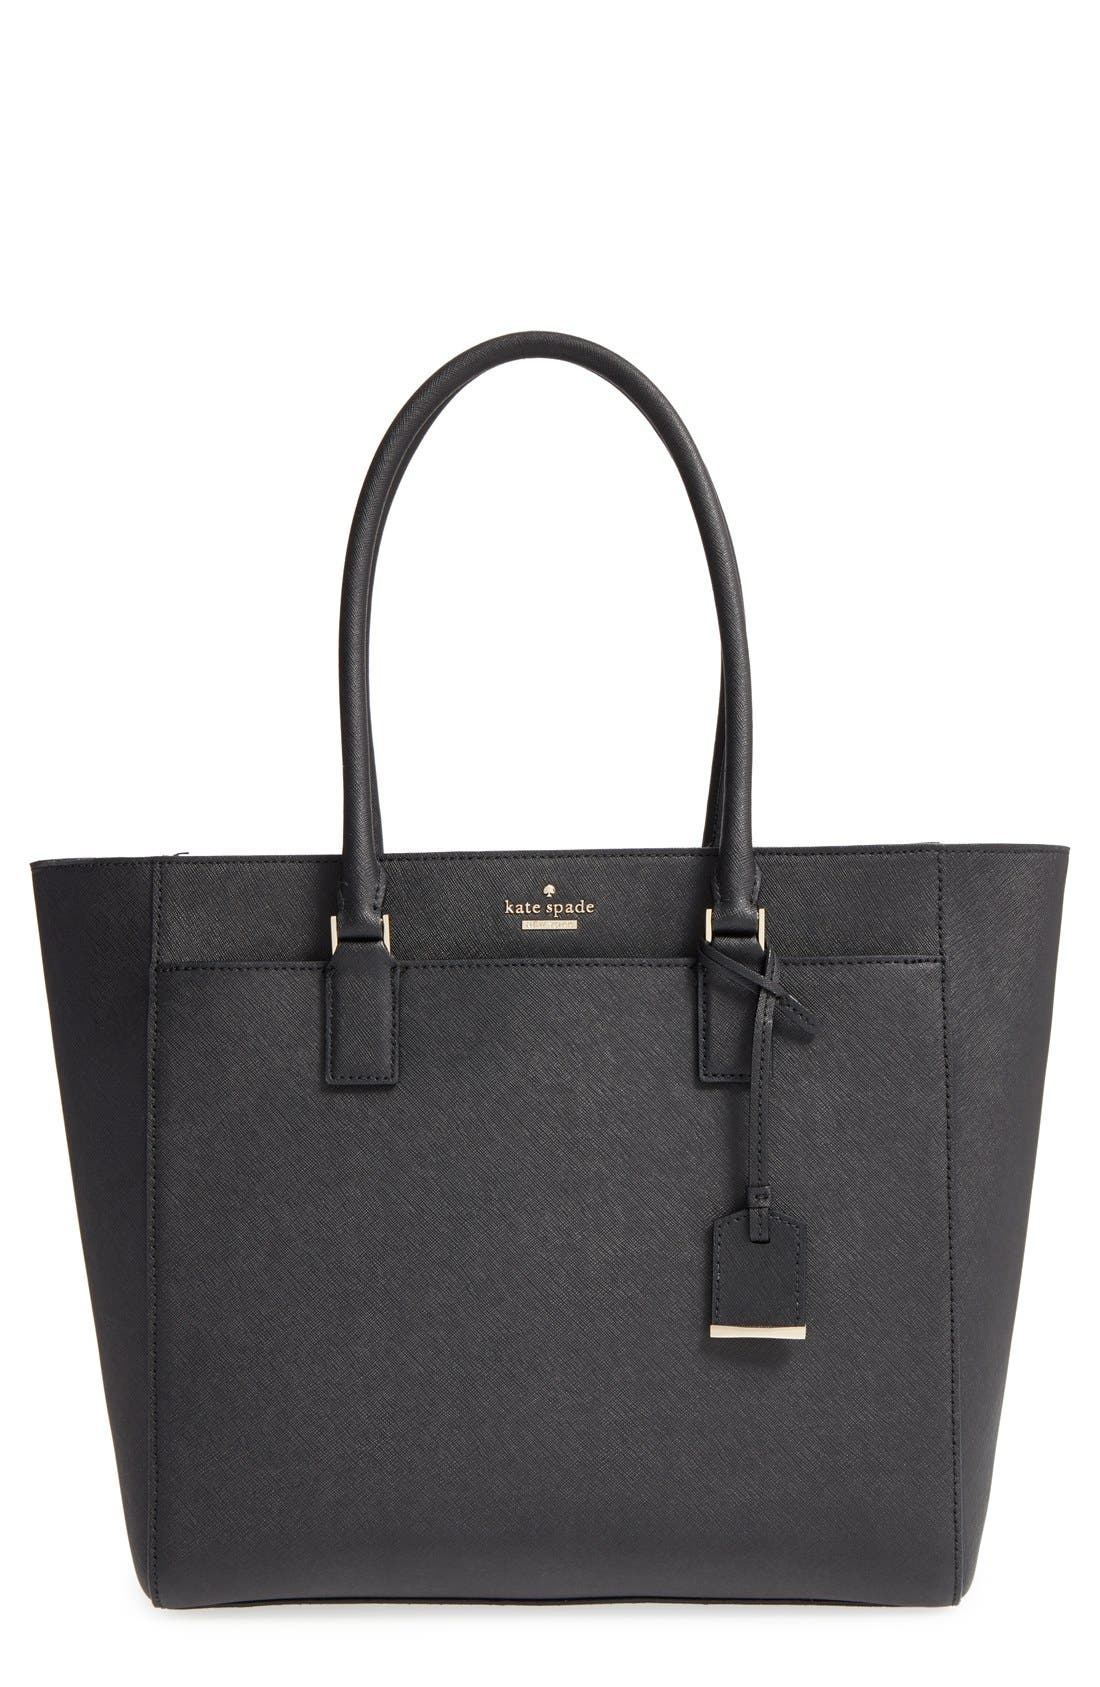 Main Image - kate spade new york 'cameron street - havana' textured leather tote